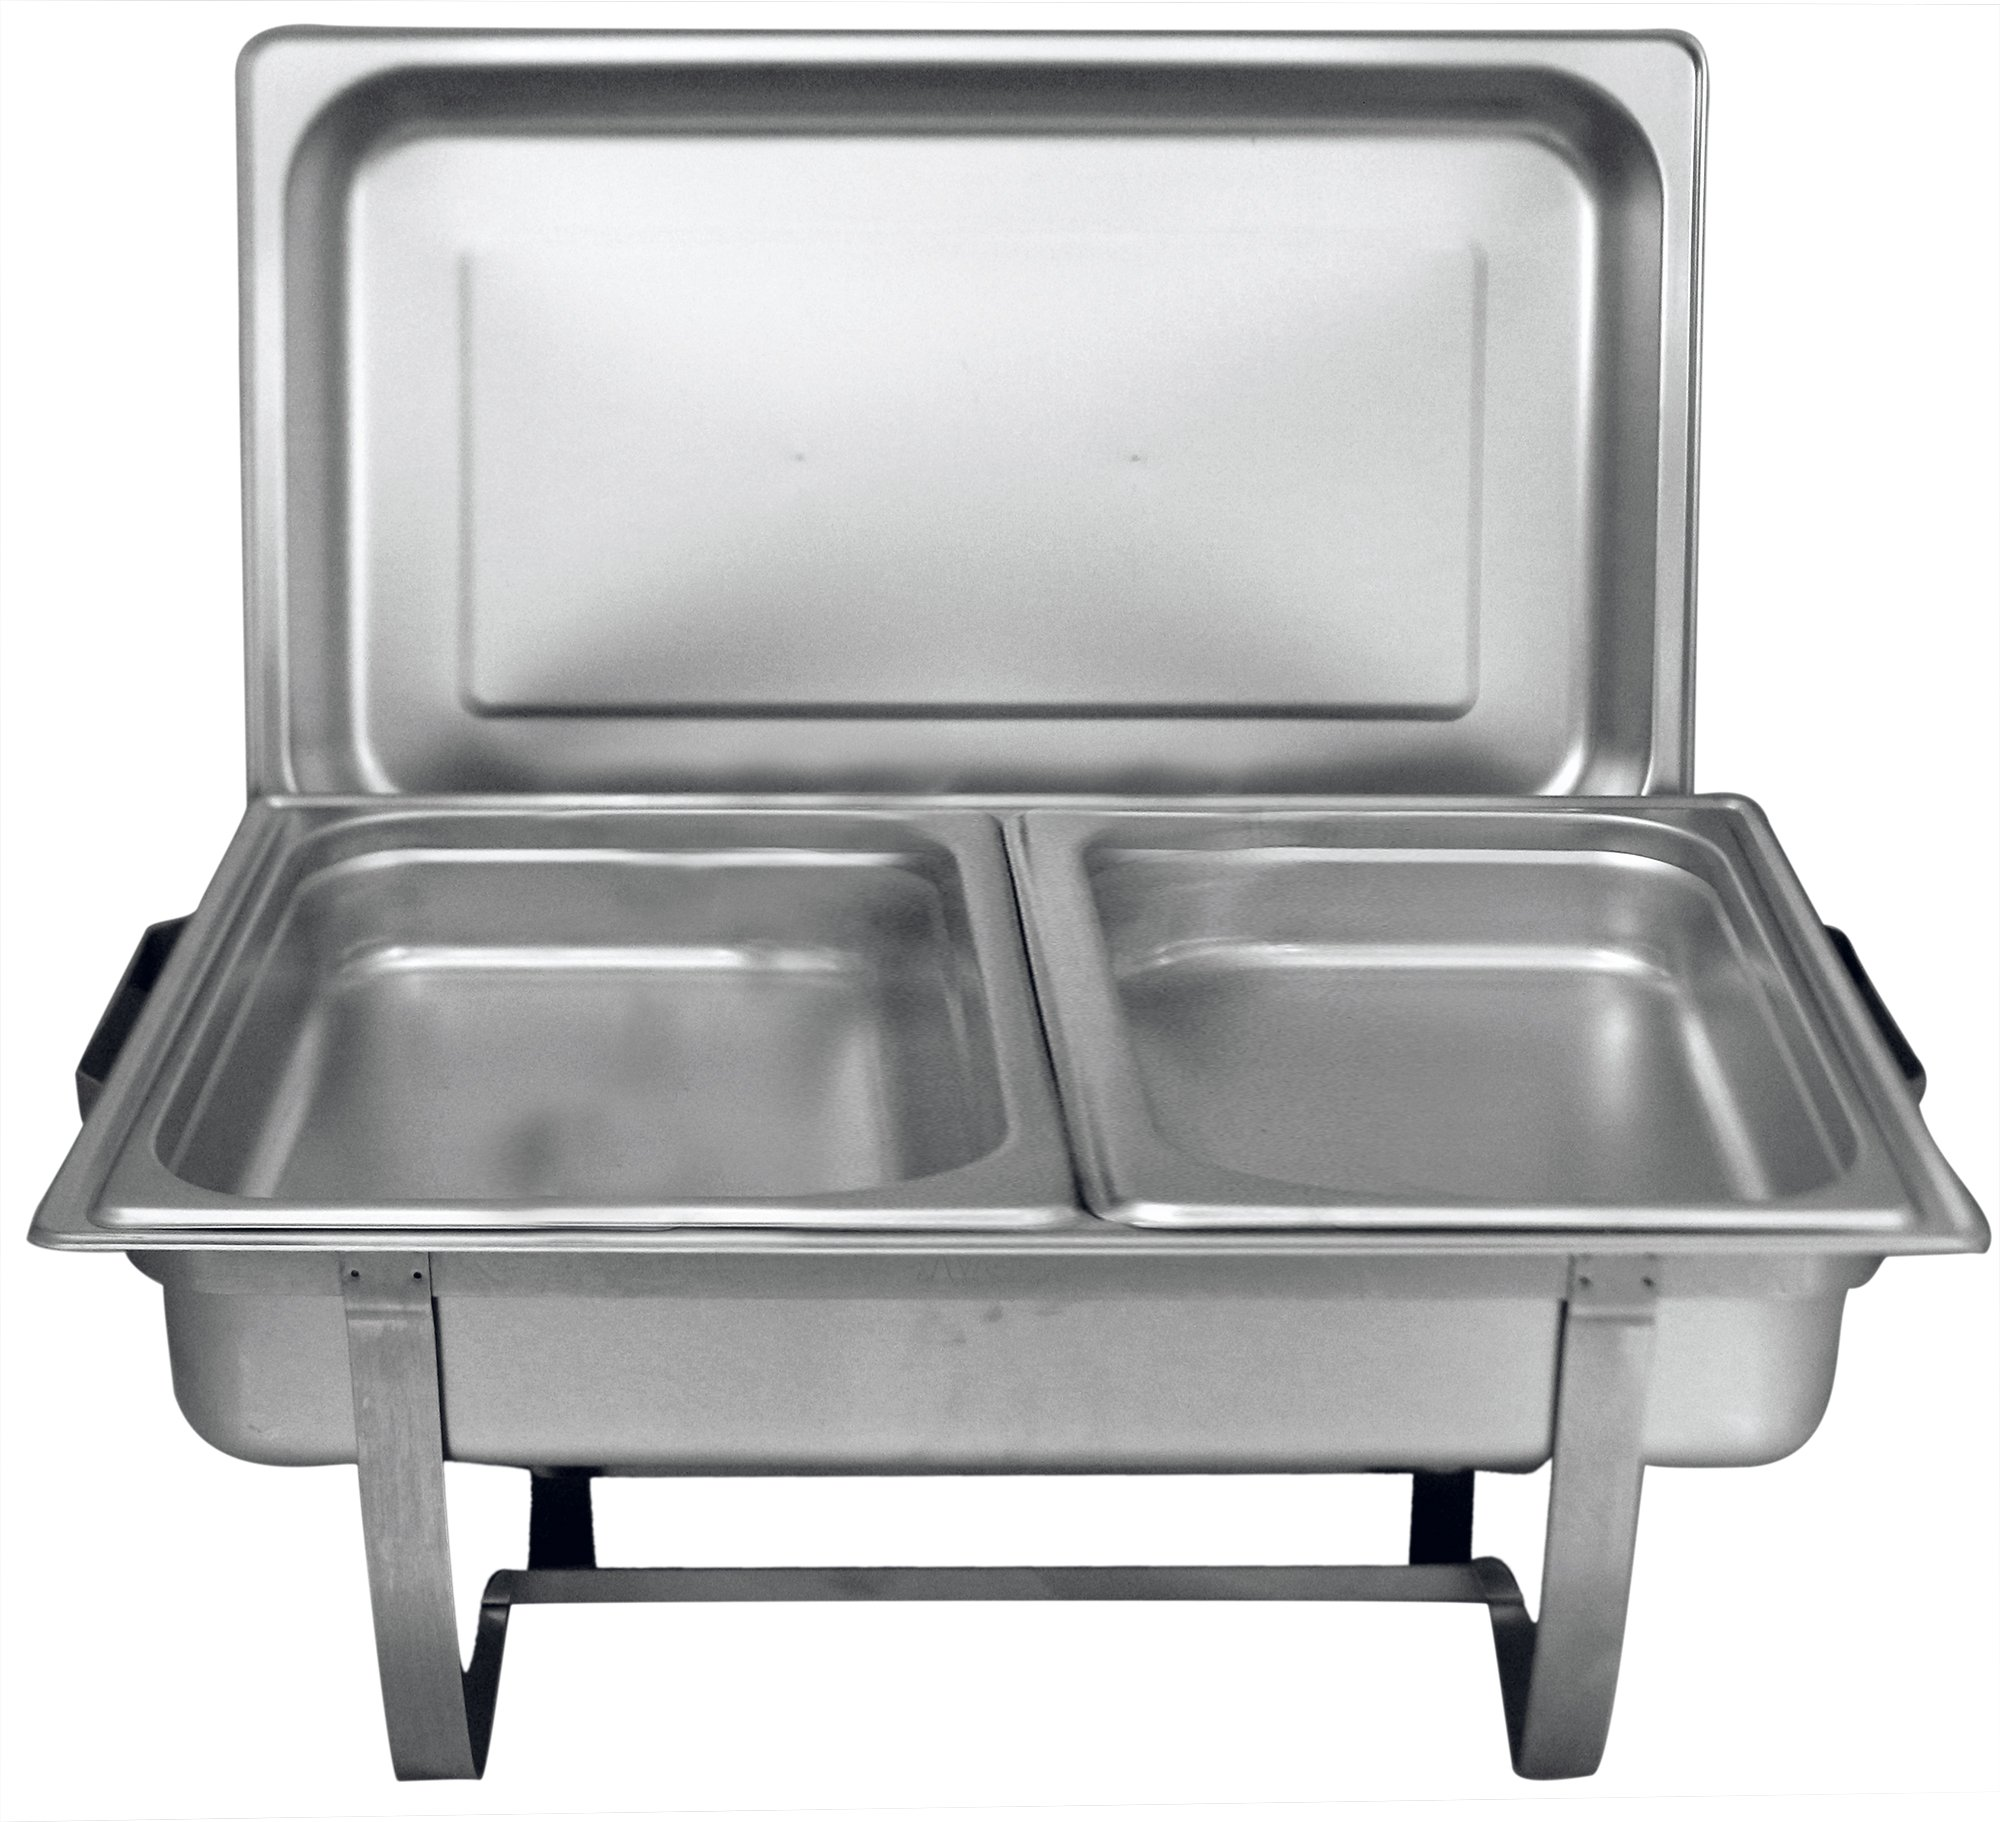 Tiger Chef 8 Quart Full Size Stainless Steel Chafer with Folding Frame and 2 Half Size Chafing Dishes Food Pans and Cool-Touch Plastic Handle on Top by Tiger Chef